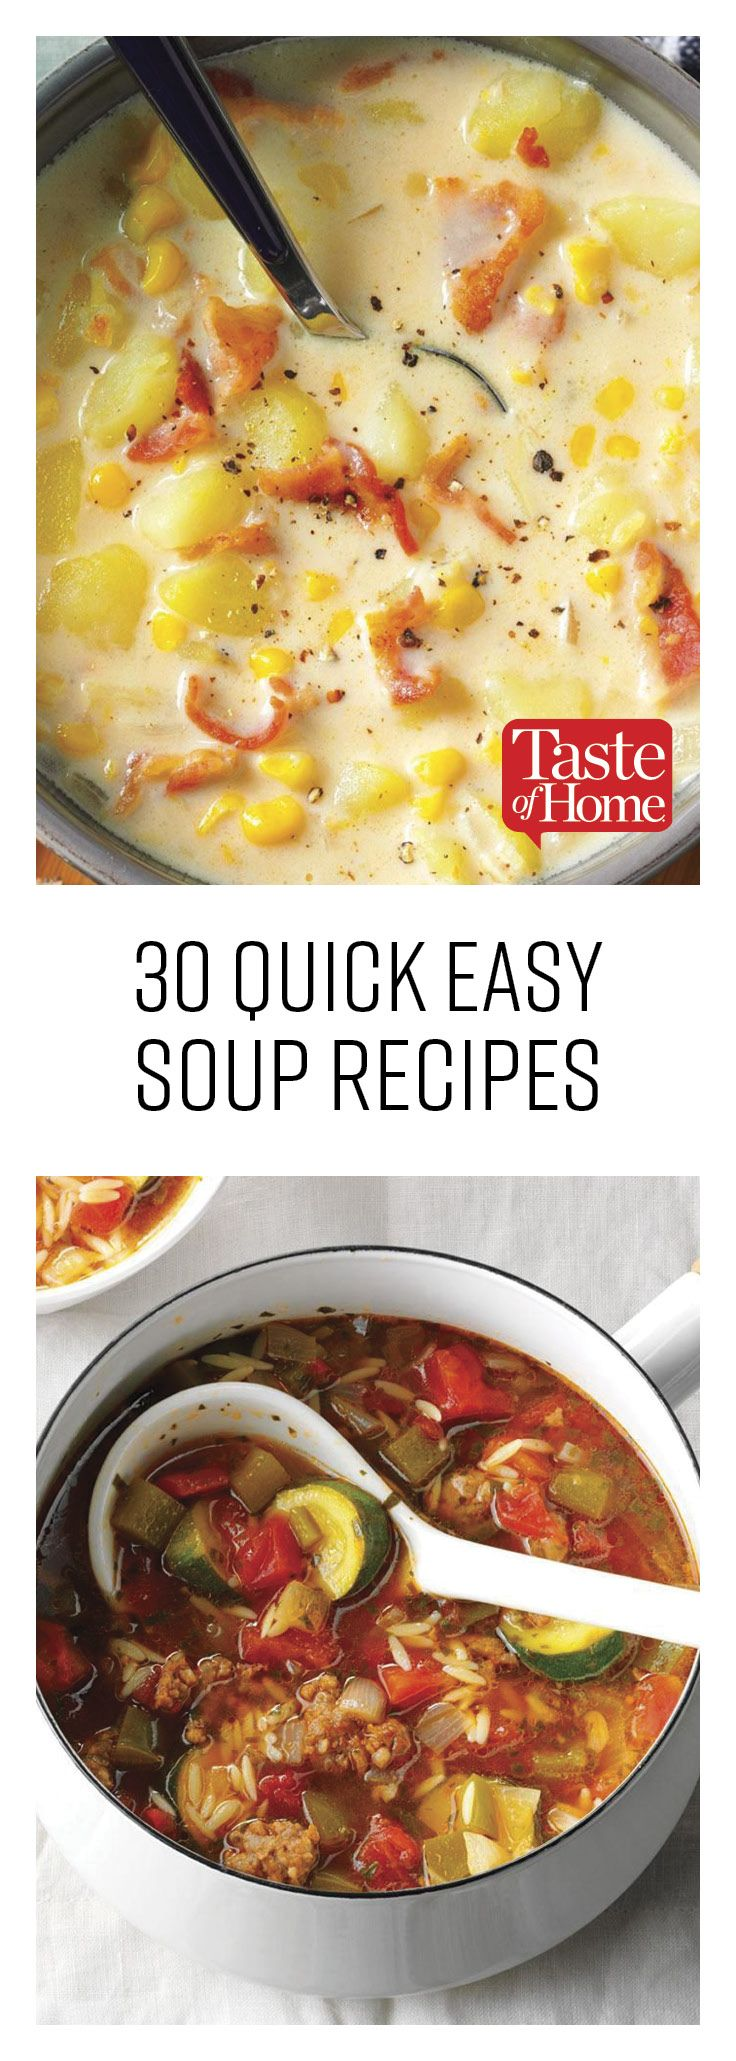 30 Easy Soup Recipes You Can Whip Up In a Flash images